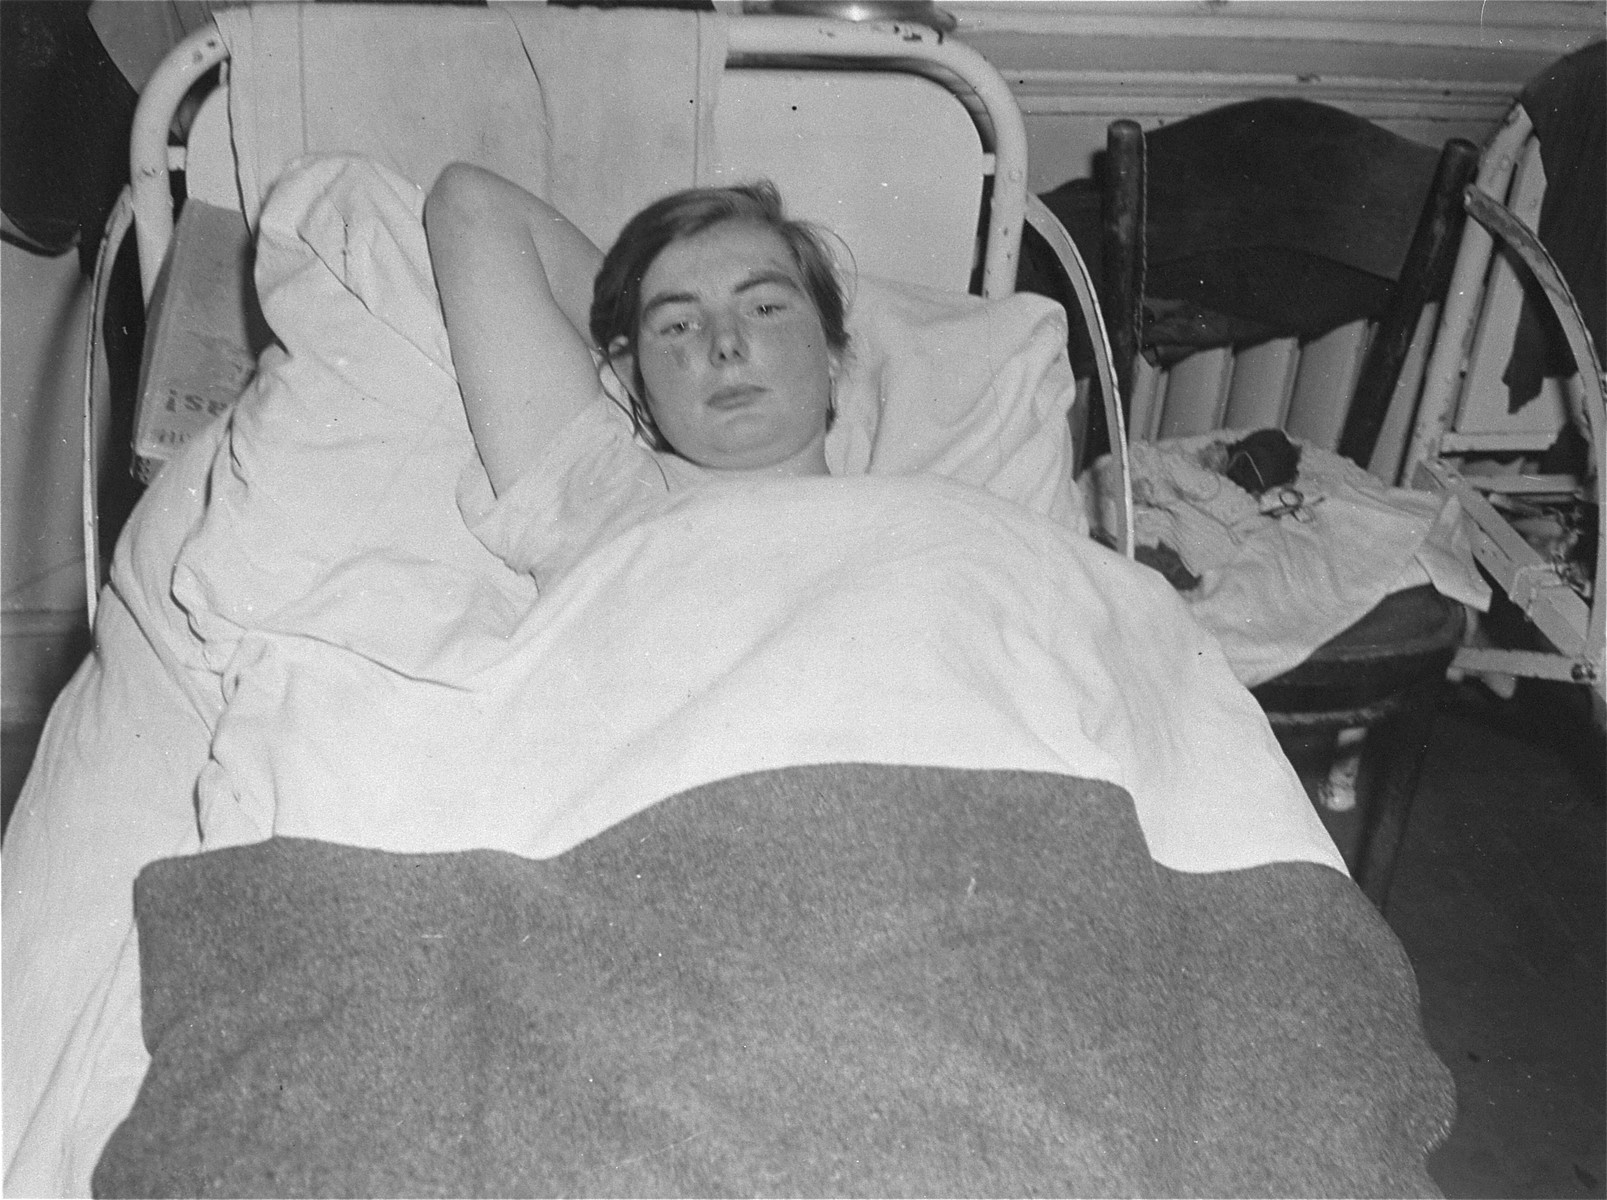 A female survivor lies in bed at the Hadamar Institute.  23-year-old Elizabeth Killiam, the mother of twins, was sterilized at a health care facility in Weilburg before being transferred to the Hadamar Institute.  The photograph was taken by an American military photographer soon after the liberation.